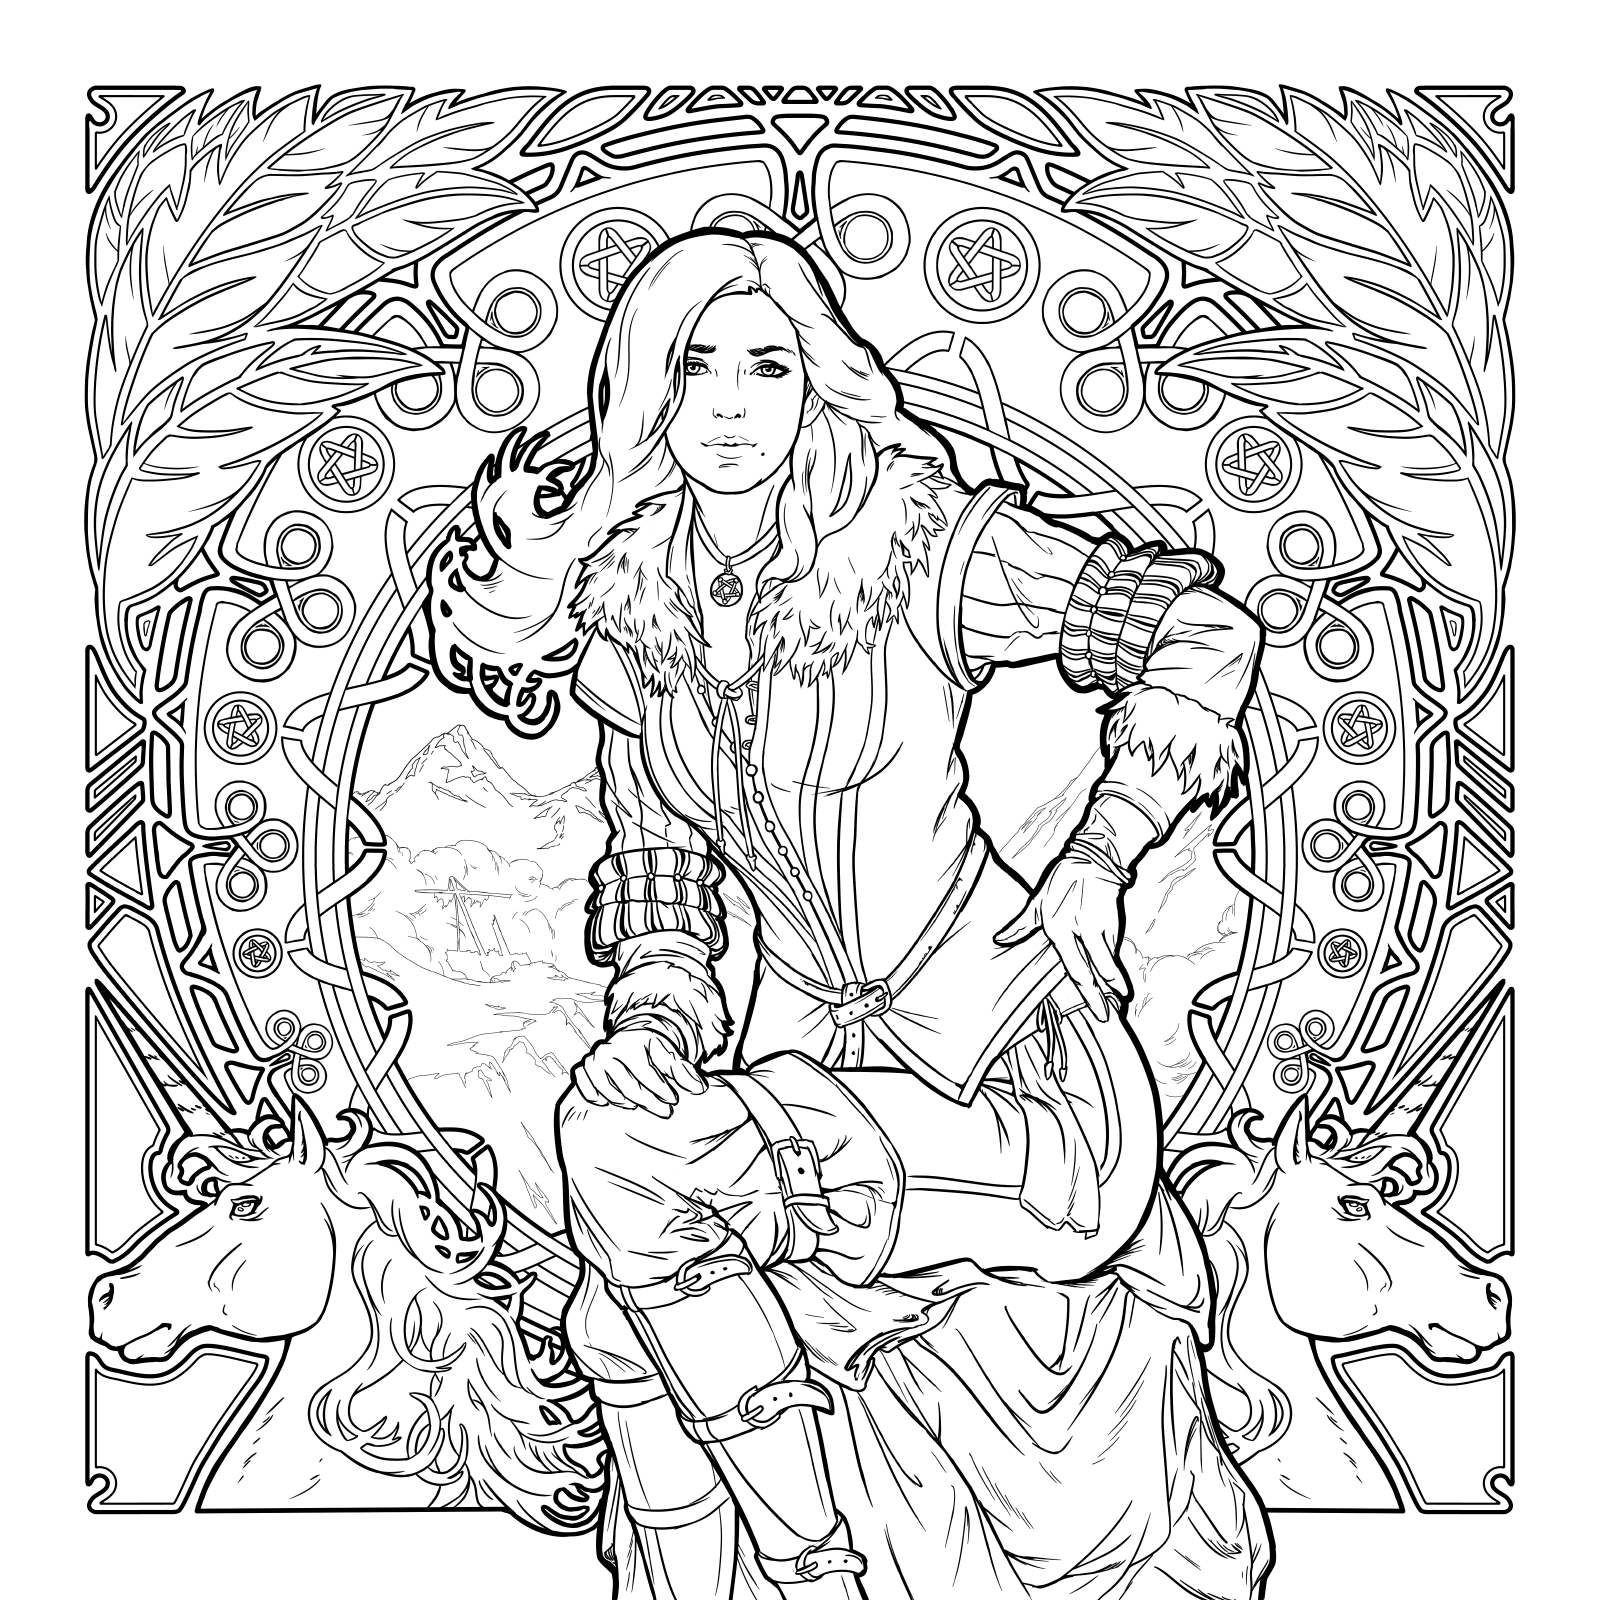 DarkHorse_WitcherColoringBook_Yennefer_Submission_v1.jpg